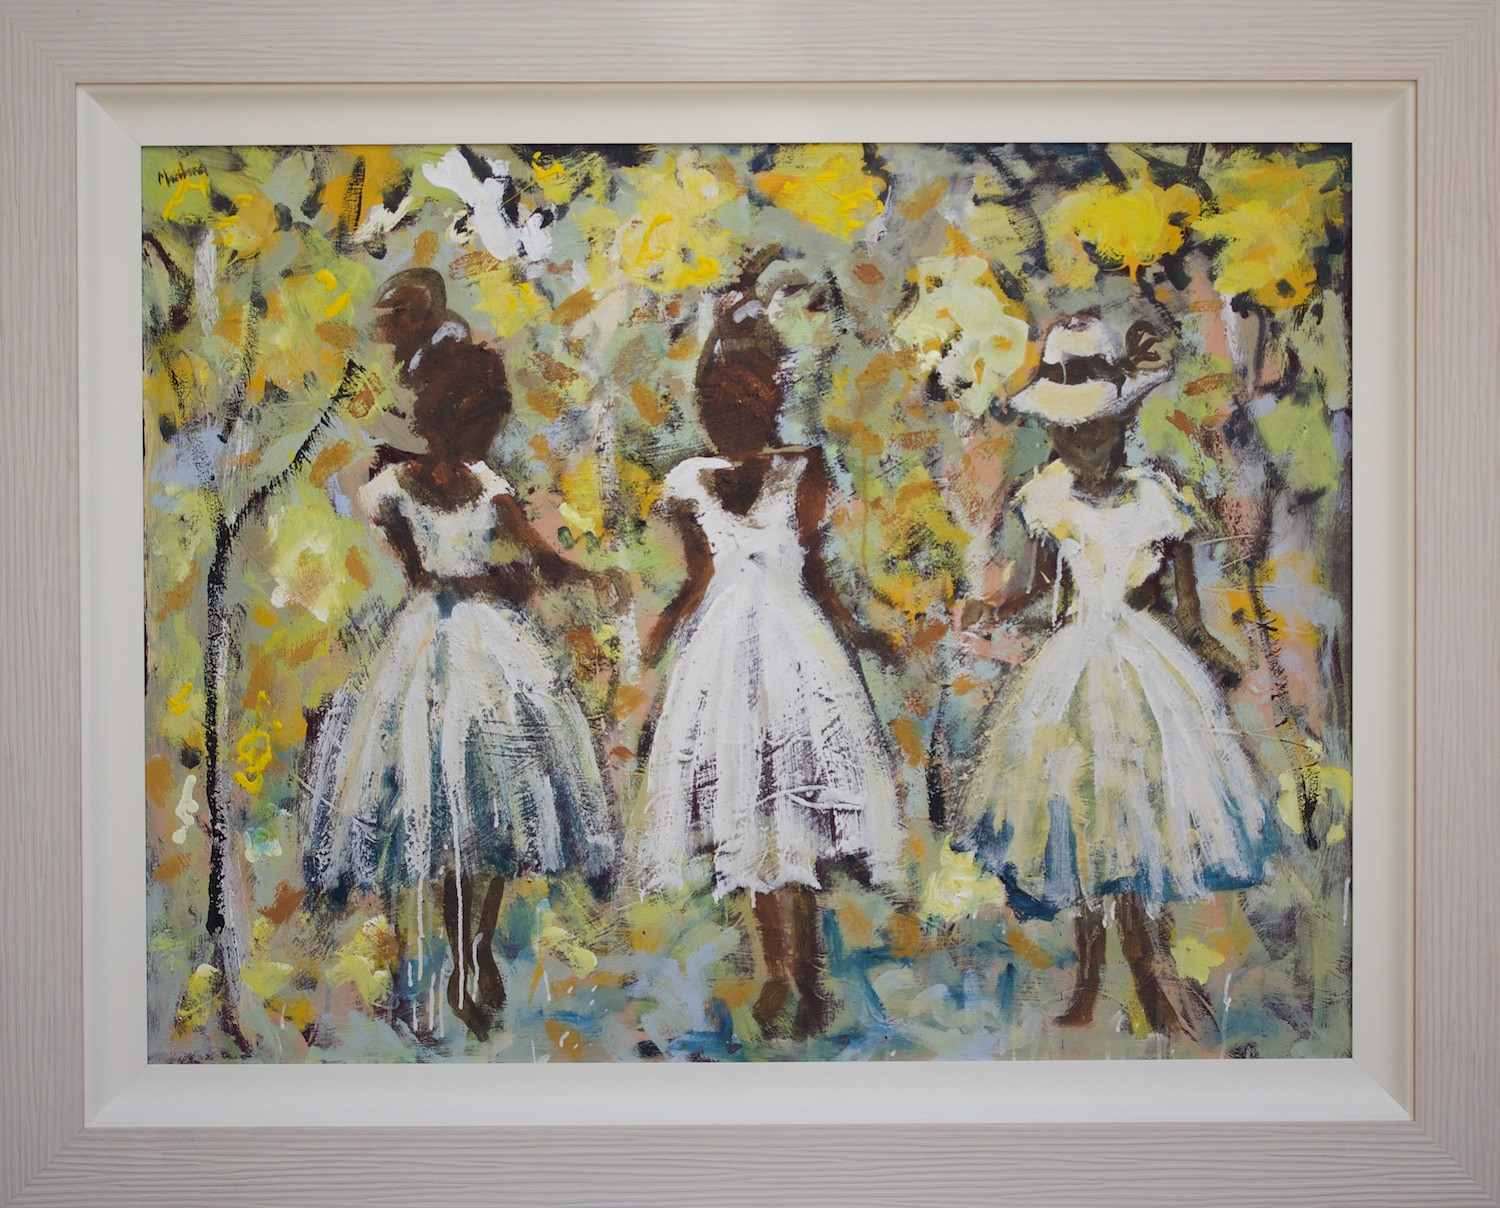 John Maitland 'Friends and Little Yellow Trees' 150cm x 120cm (#14882)